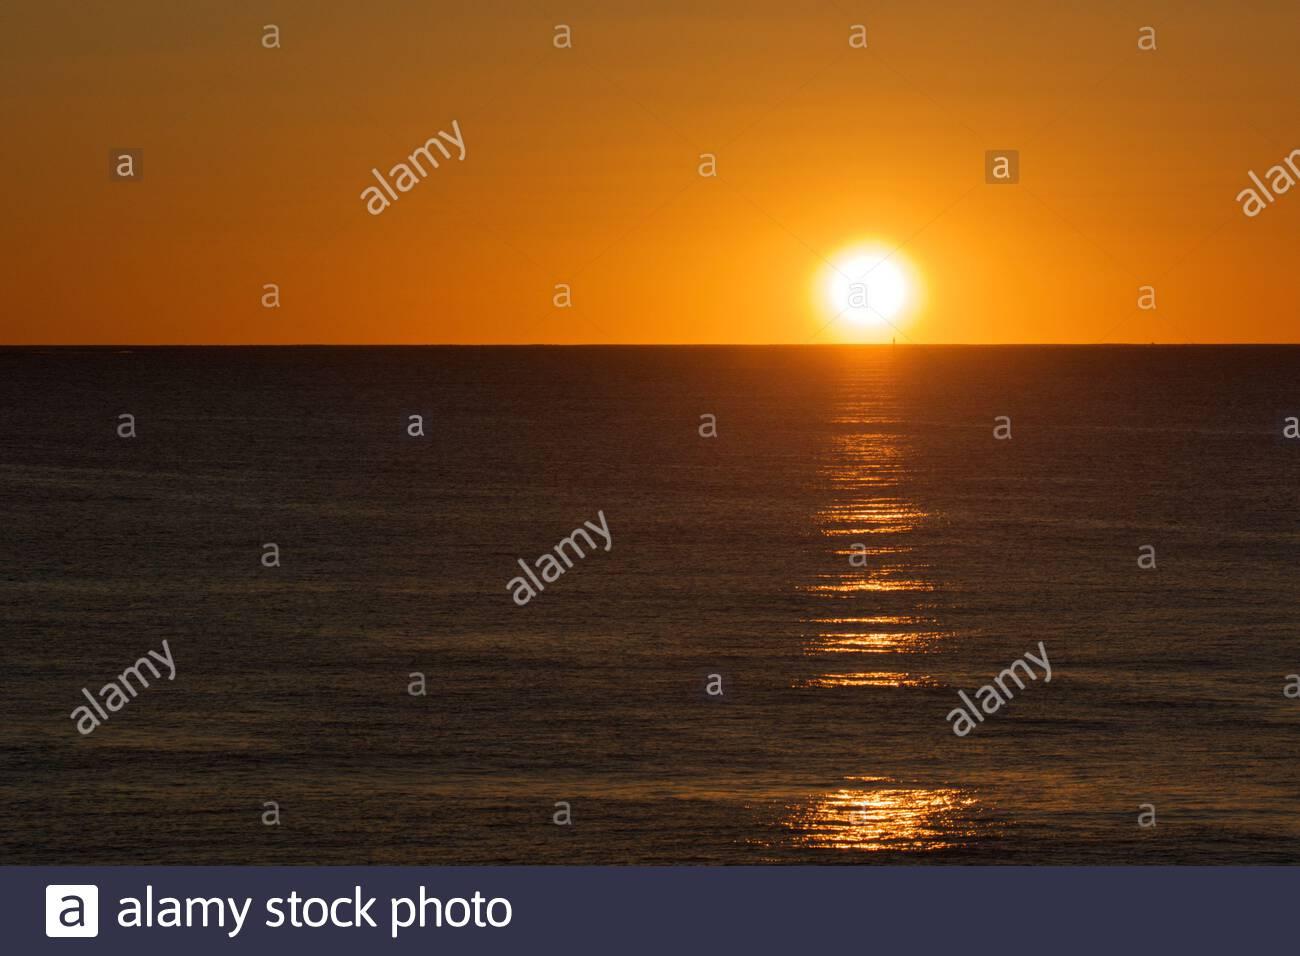 sunset-as-seen-from-north-beach-in-perth-western-australia-with-an-orange-smoky-glow-2C3HG74.jpg